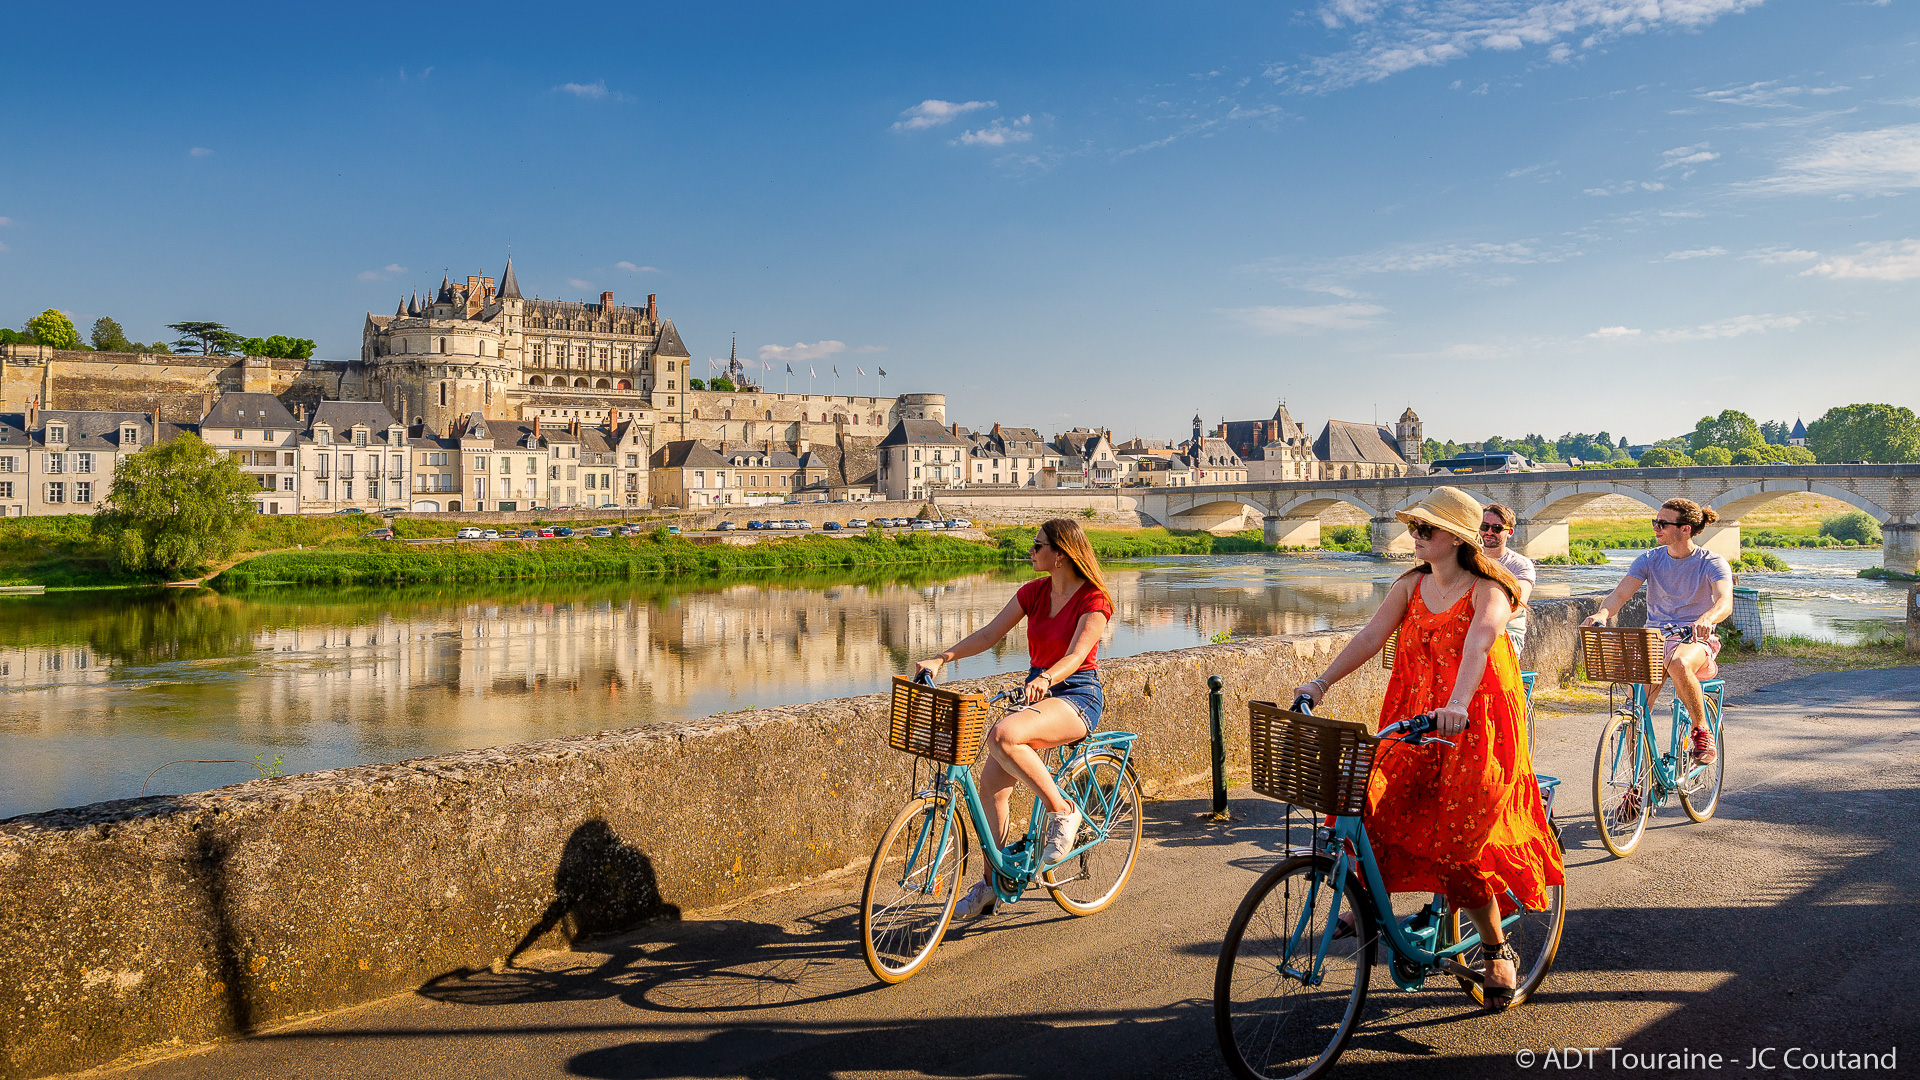 Loire_a_velo_Amboise_Credit_ADT_Touraine_JC_Coutand-2028–6